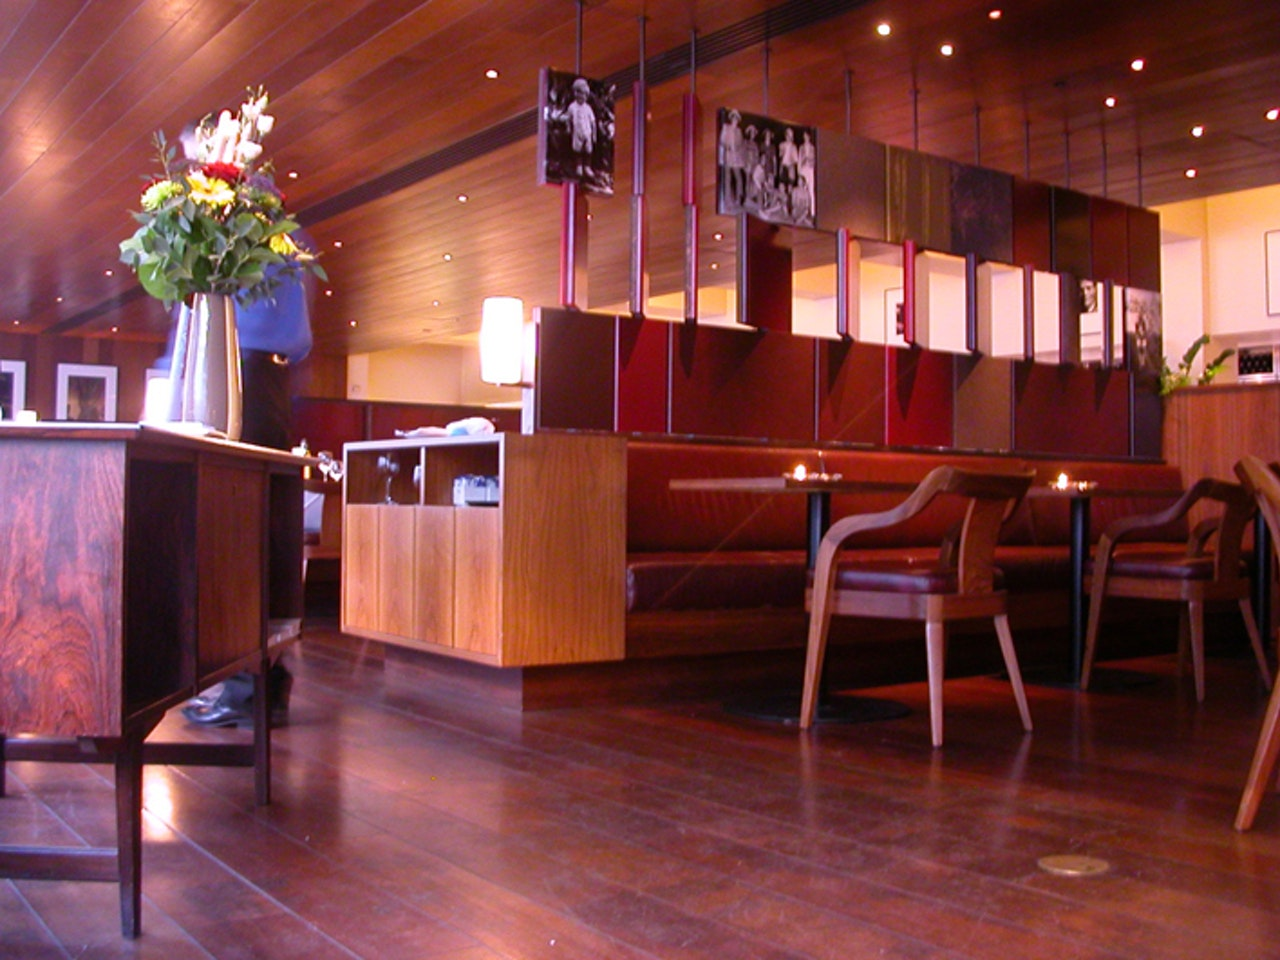 Eyre Brothers Restaurant, Shoreditch